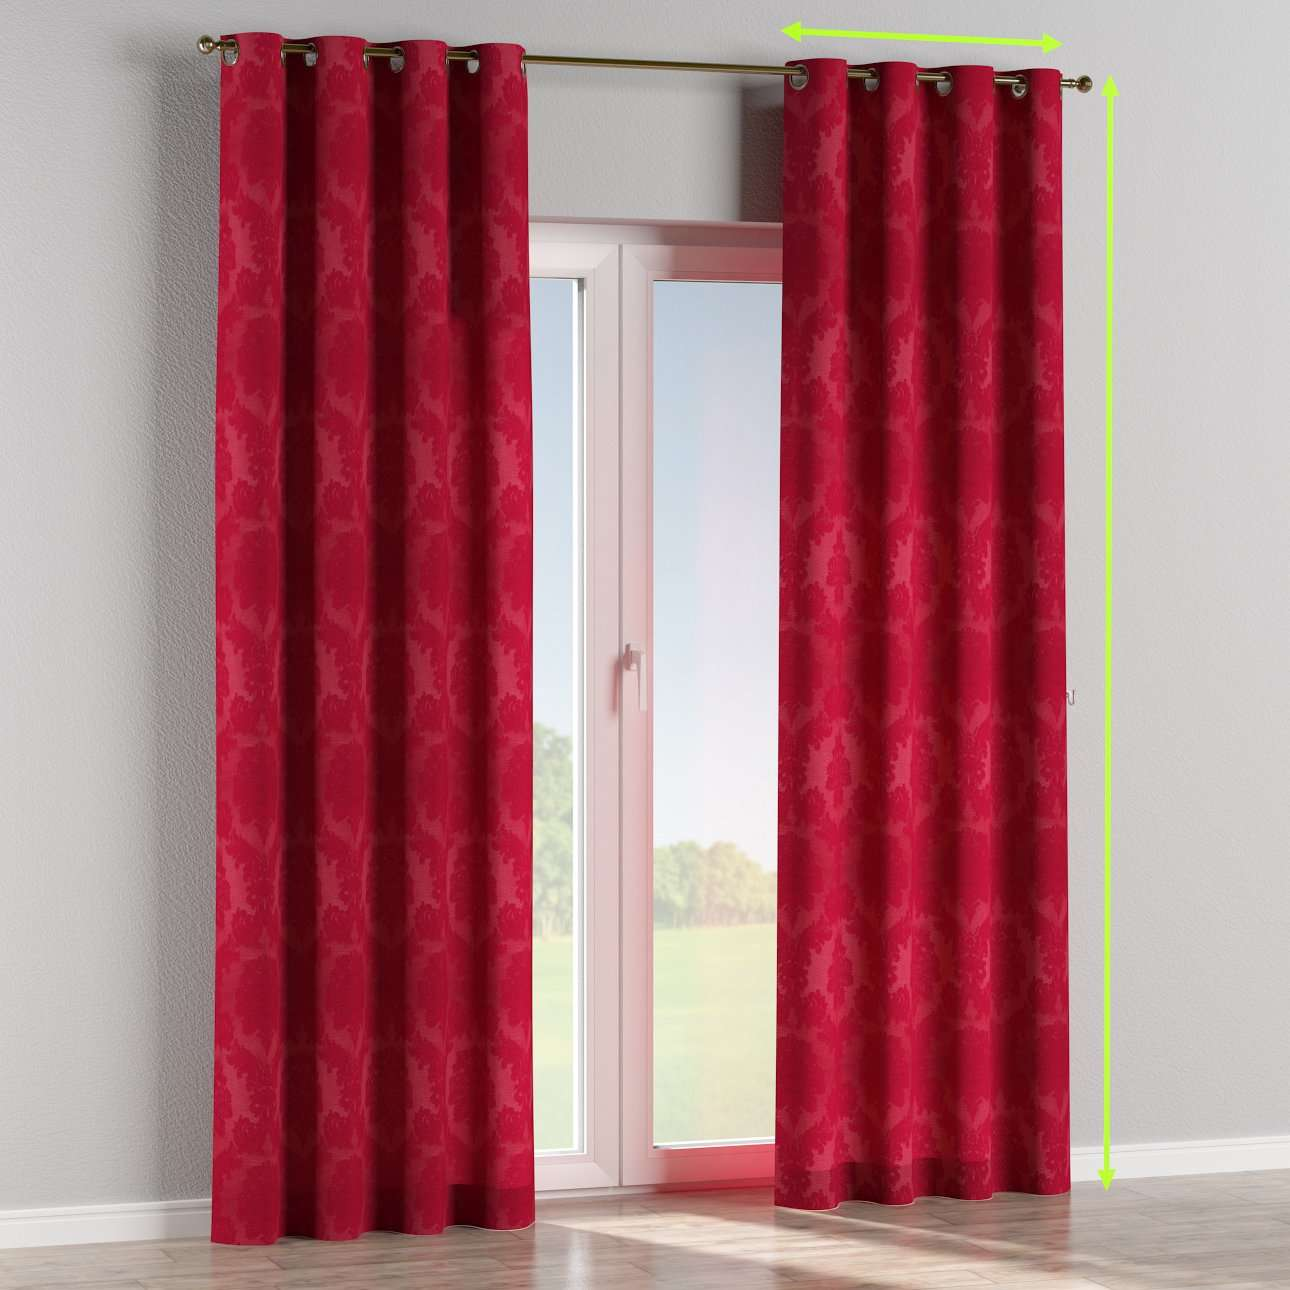 Eyelet lined curtains in collection Damasco, fabric: 613-13